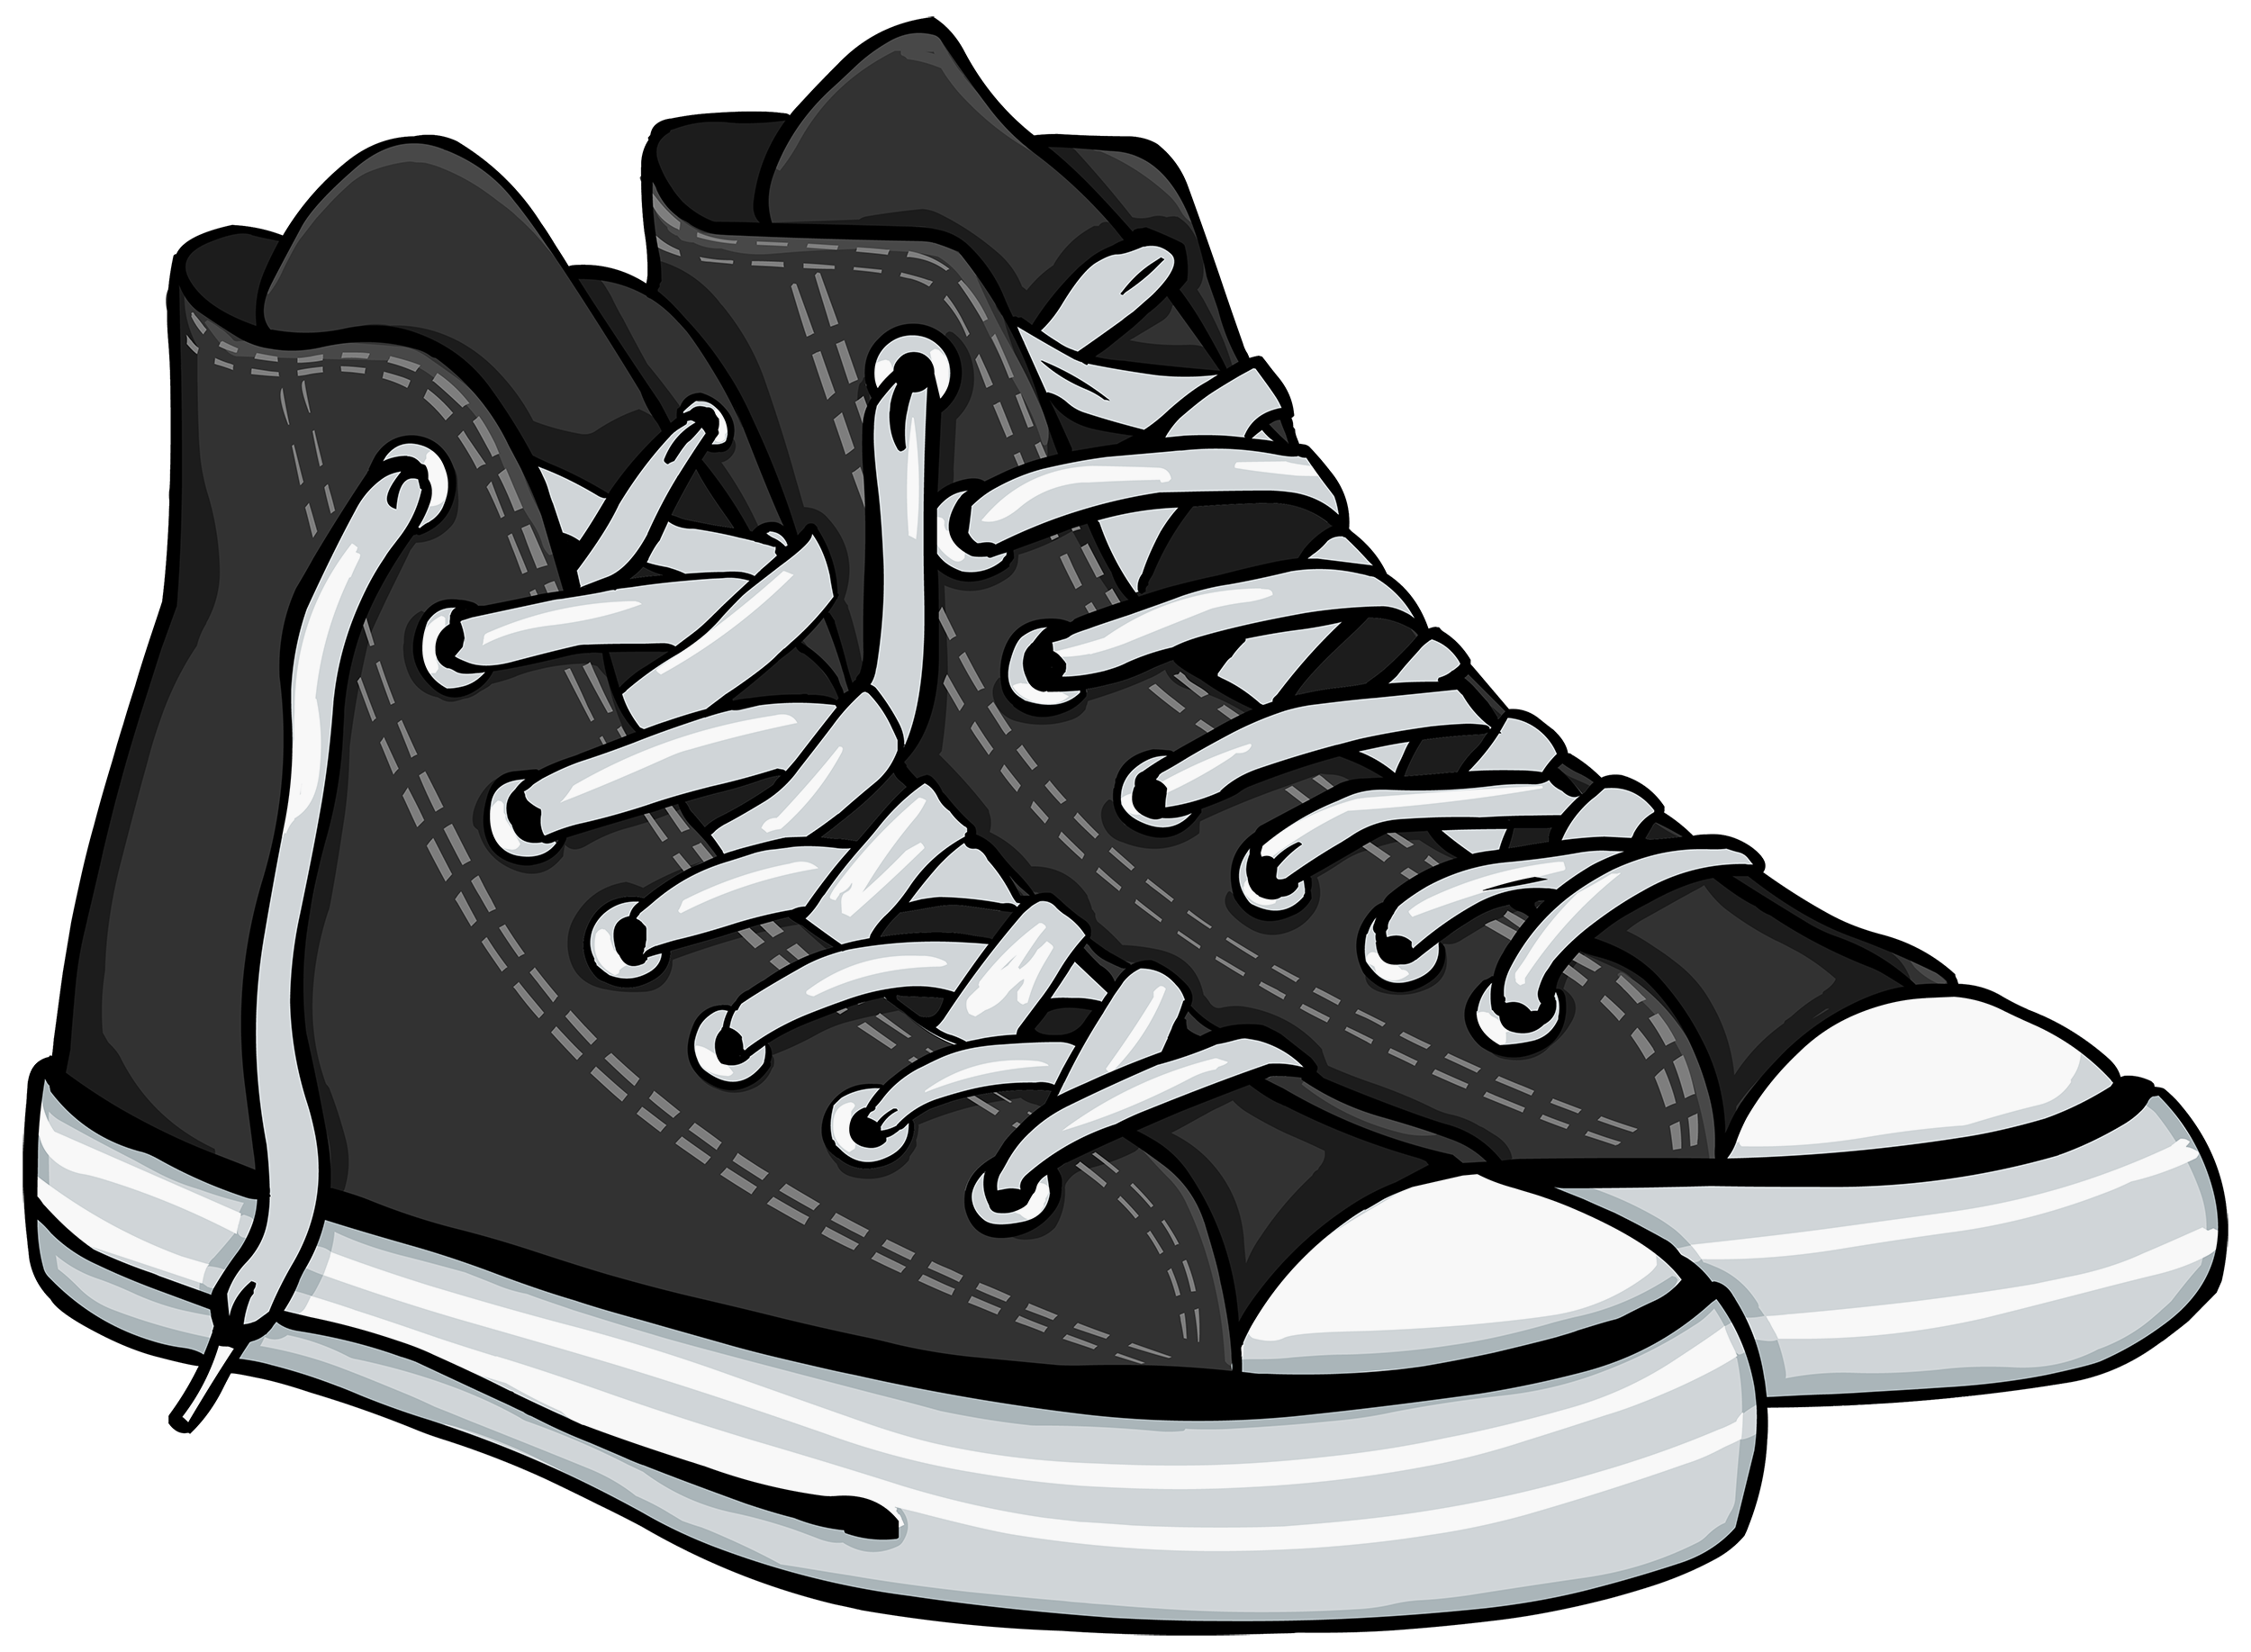 House shoes clipart clip art free stock Tennis shoes clipart black and white collection | Images | Pinterest ... clip art free stock